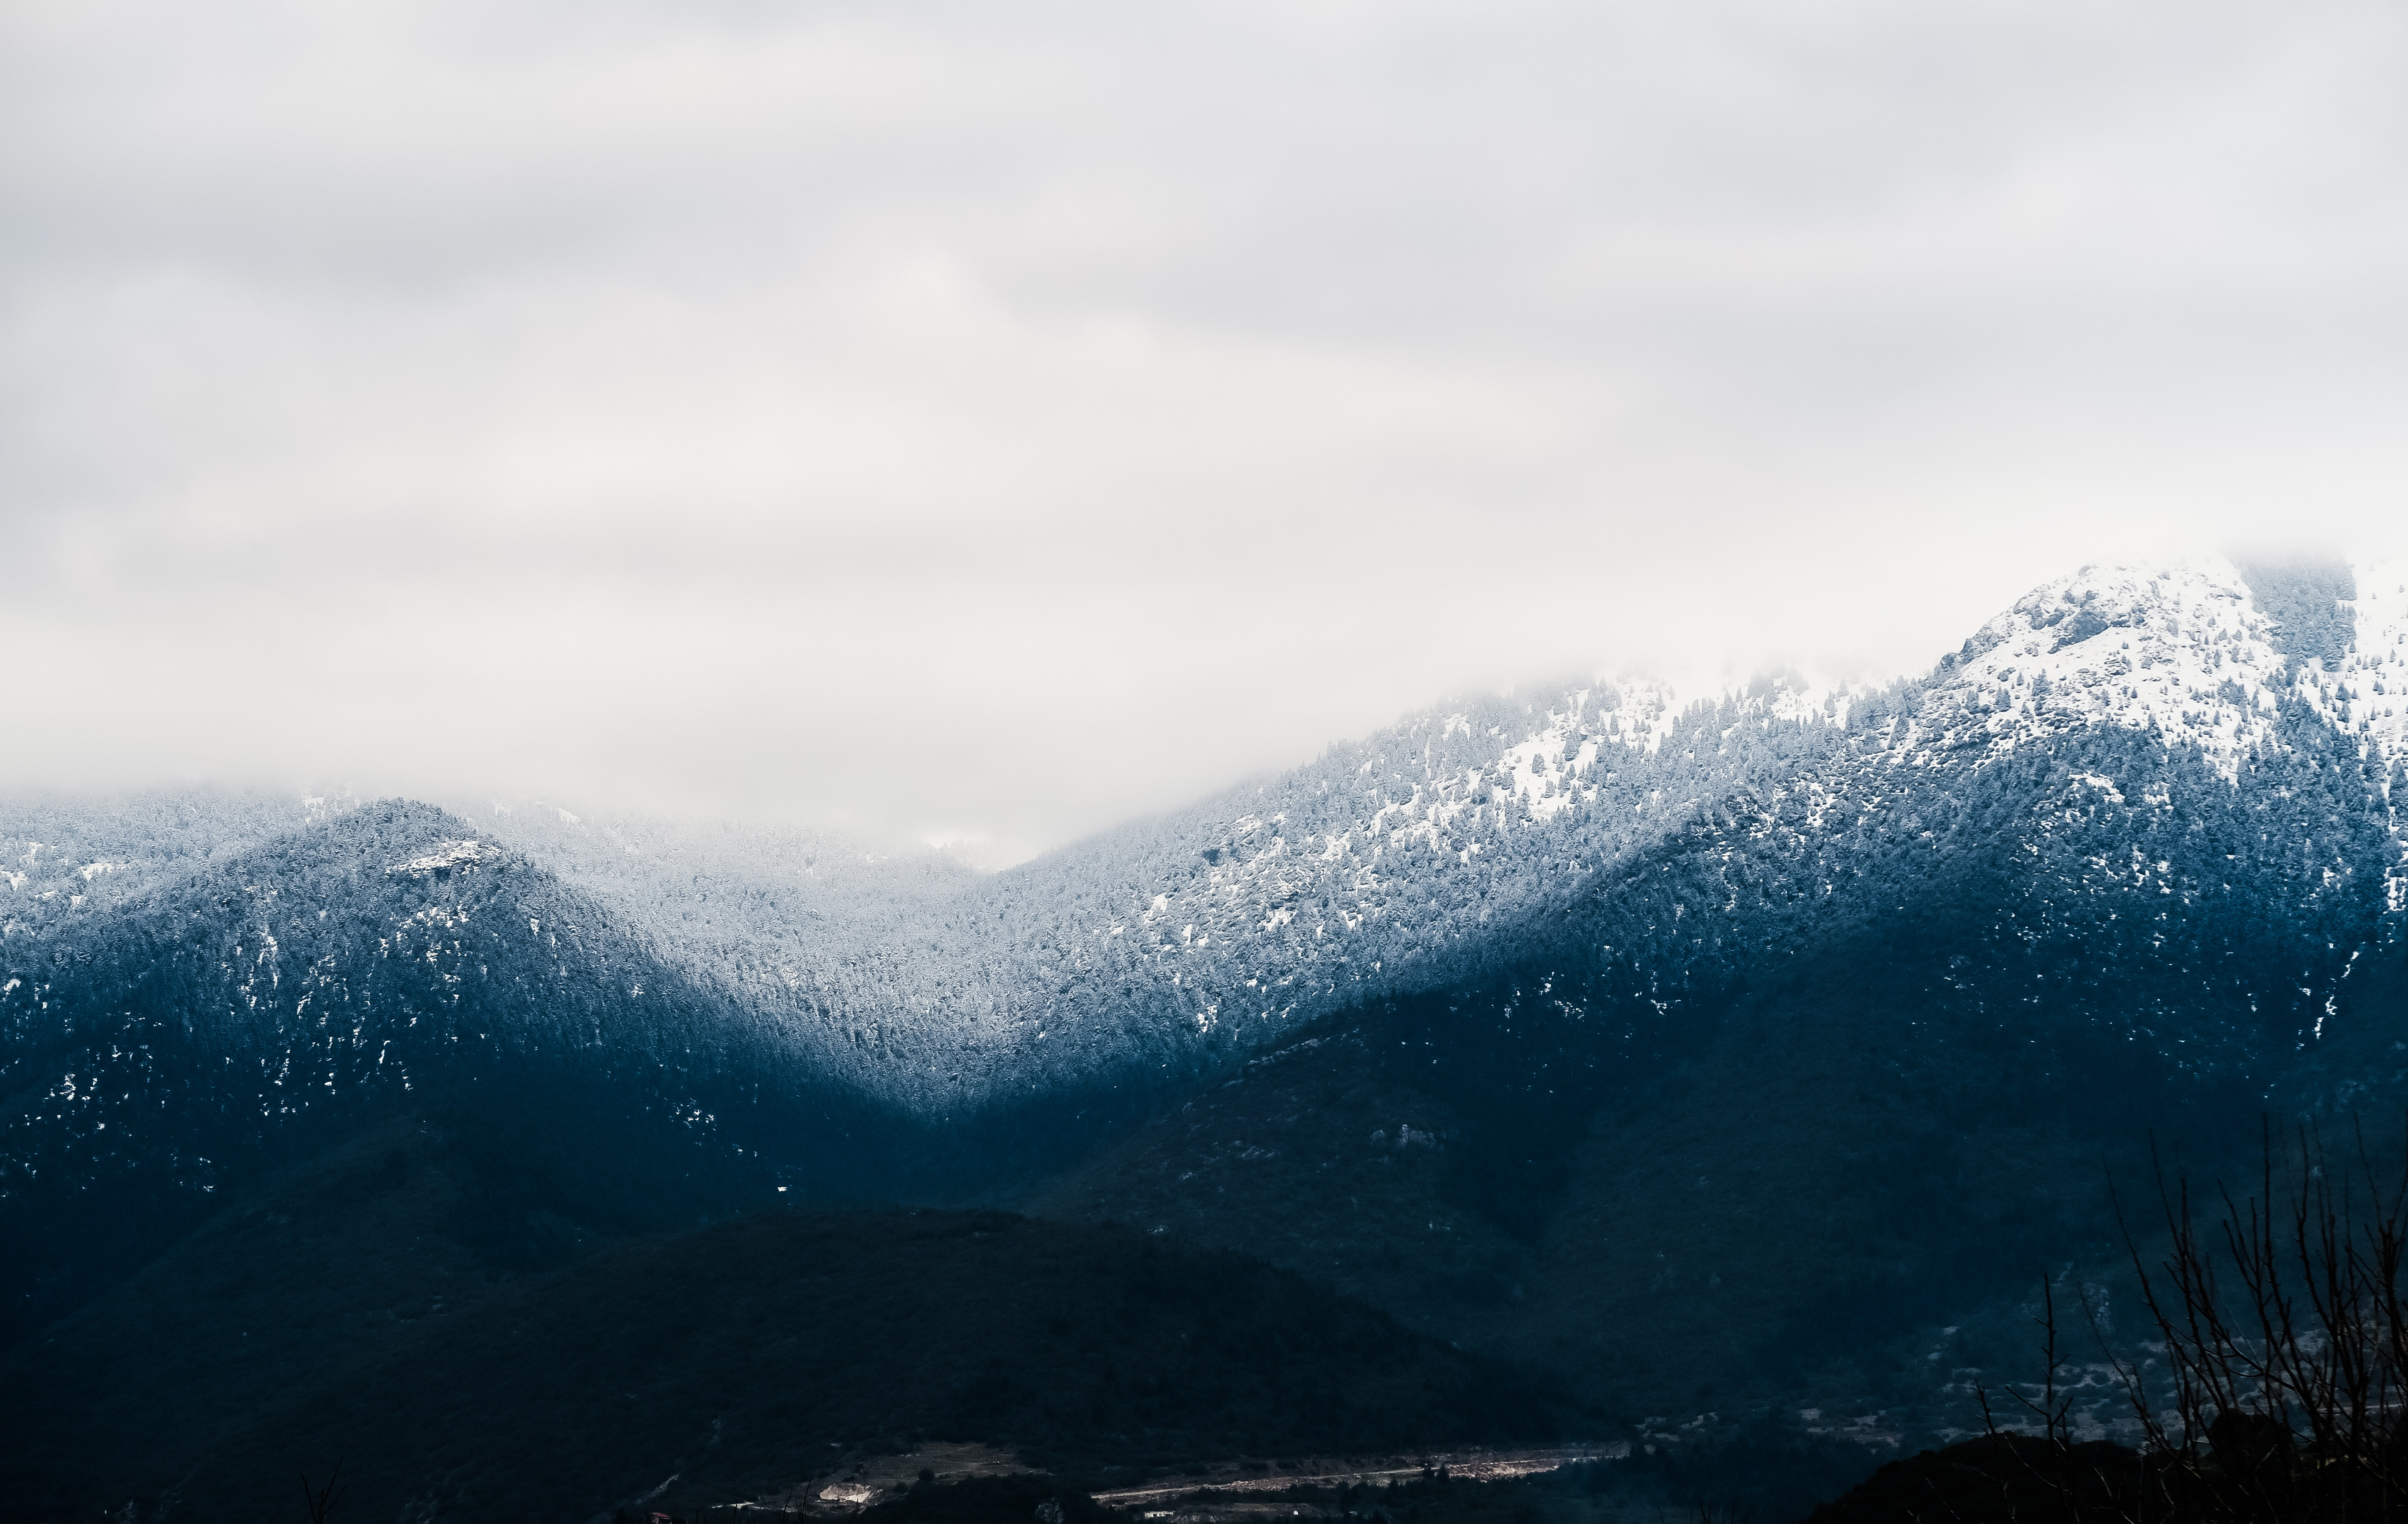 snow cap mountain under cloudy sky at daytime